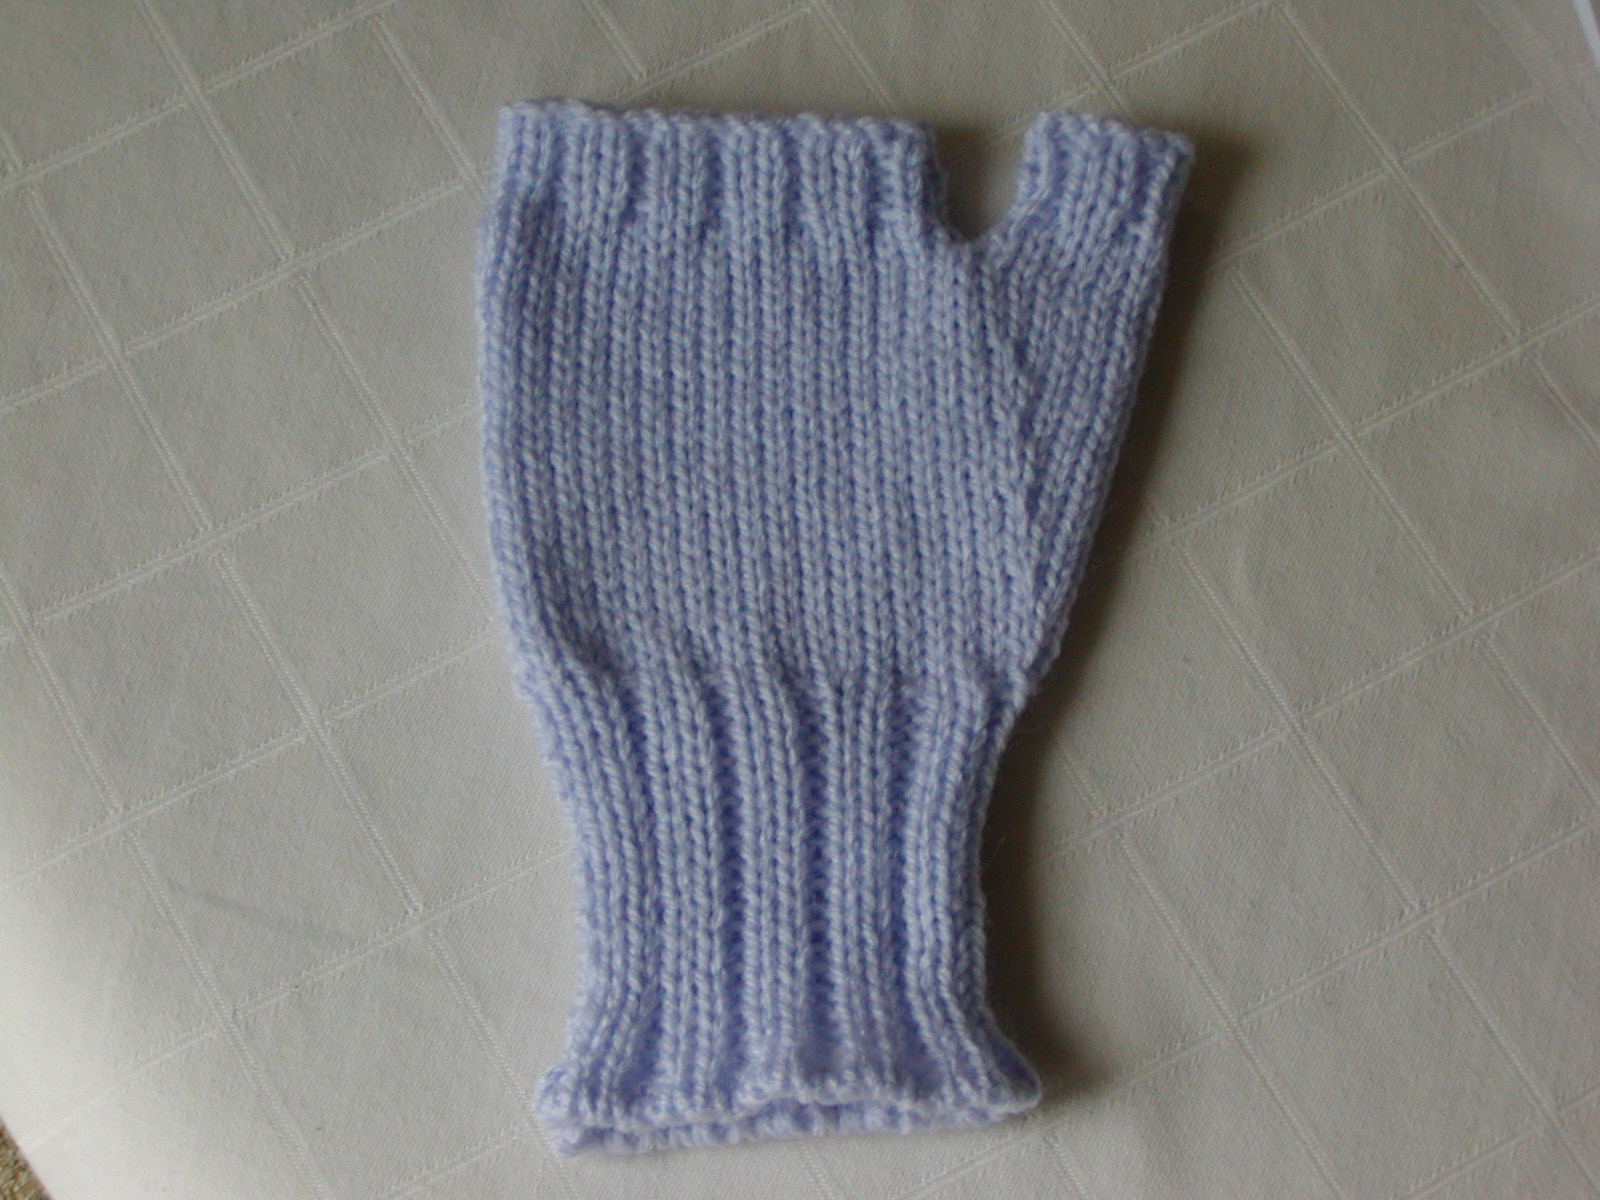 Knitted Glove Patterns : Addicted to Machine Knitting: Fingerless Gloves Machine Knitting Pattern